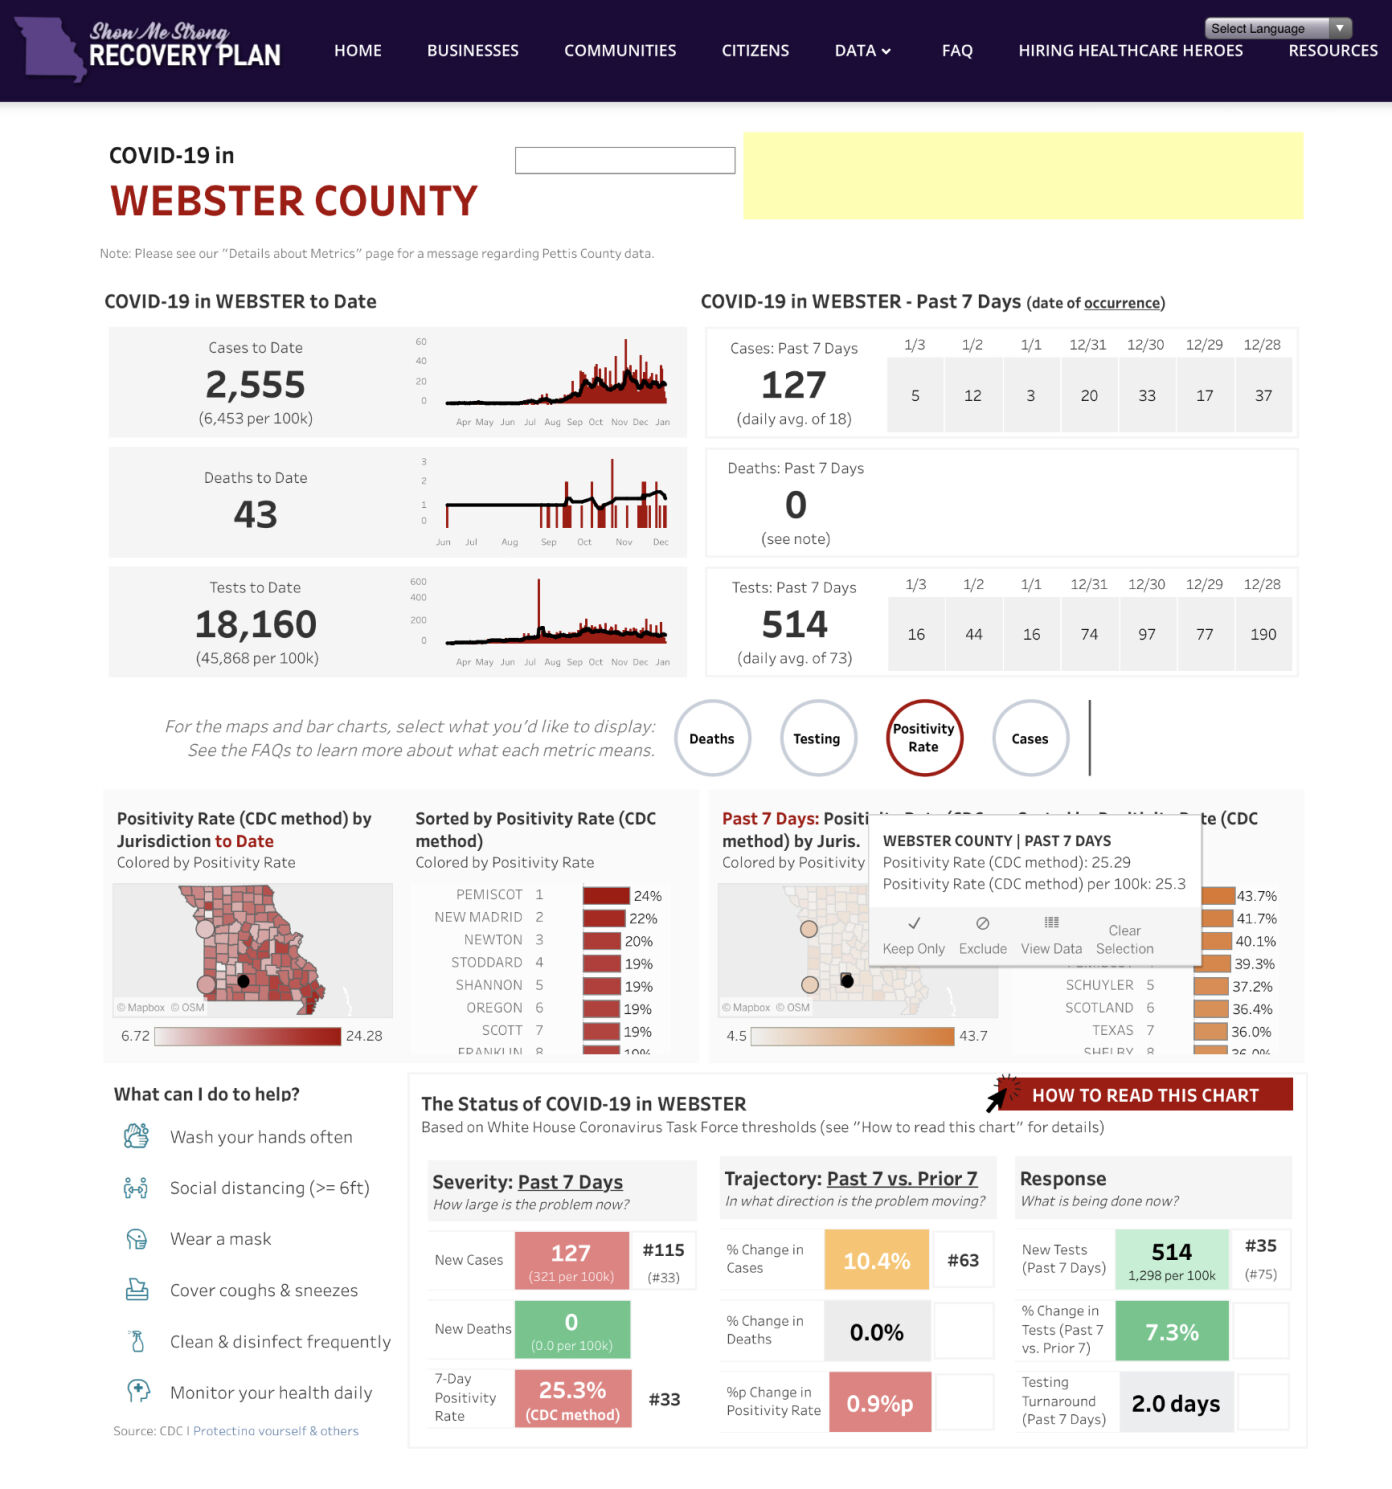 - COVID-19 cases Jan. 6 Web. Co. Mo. State